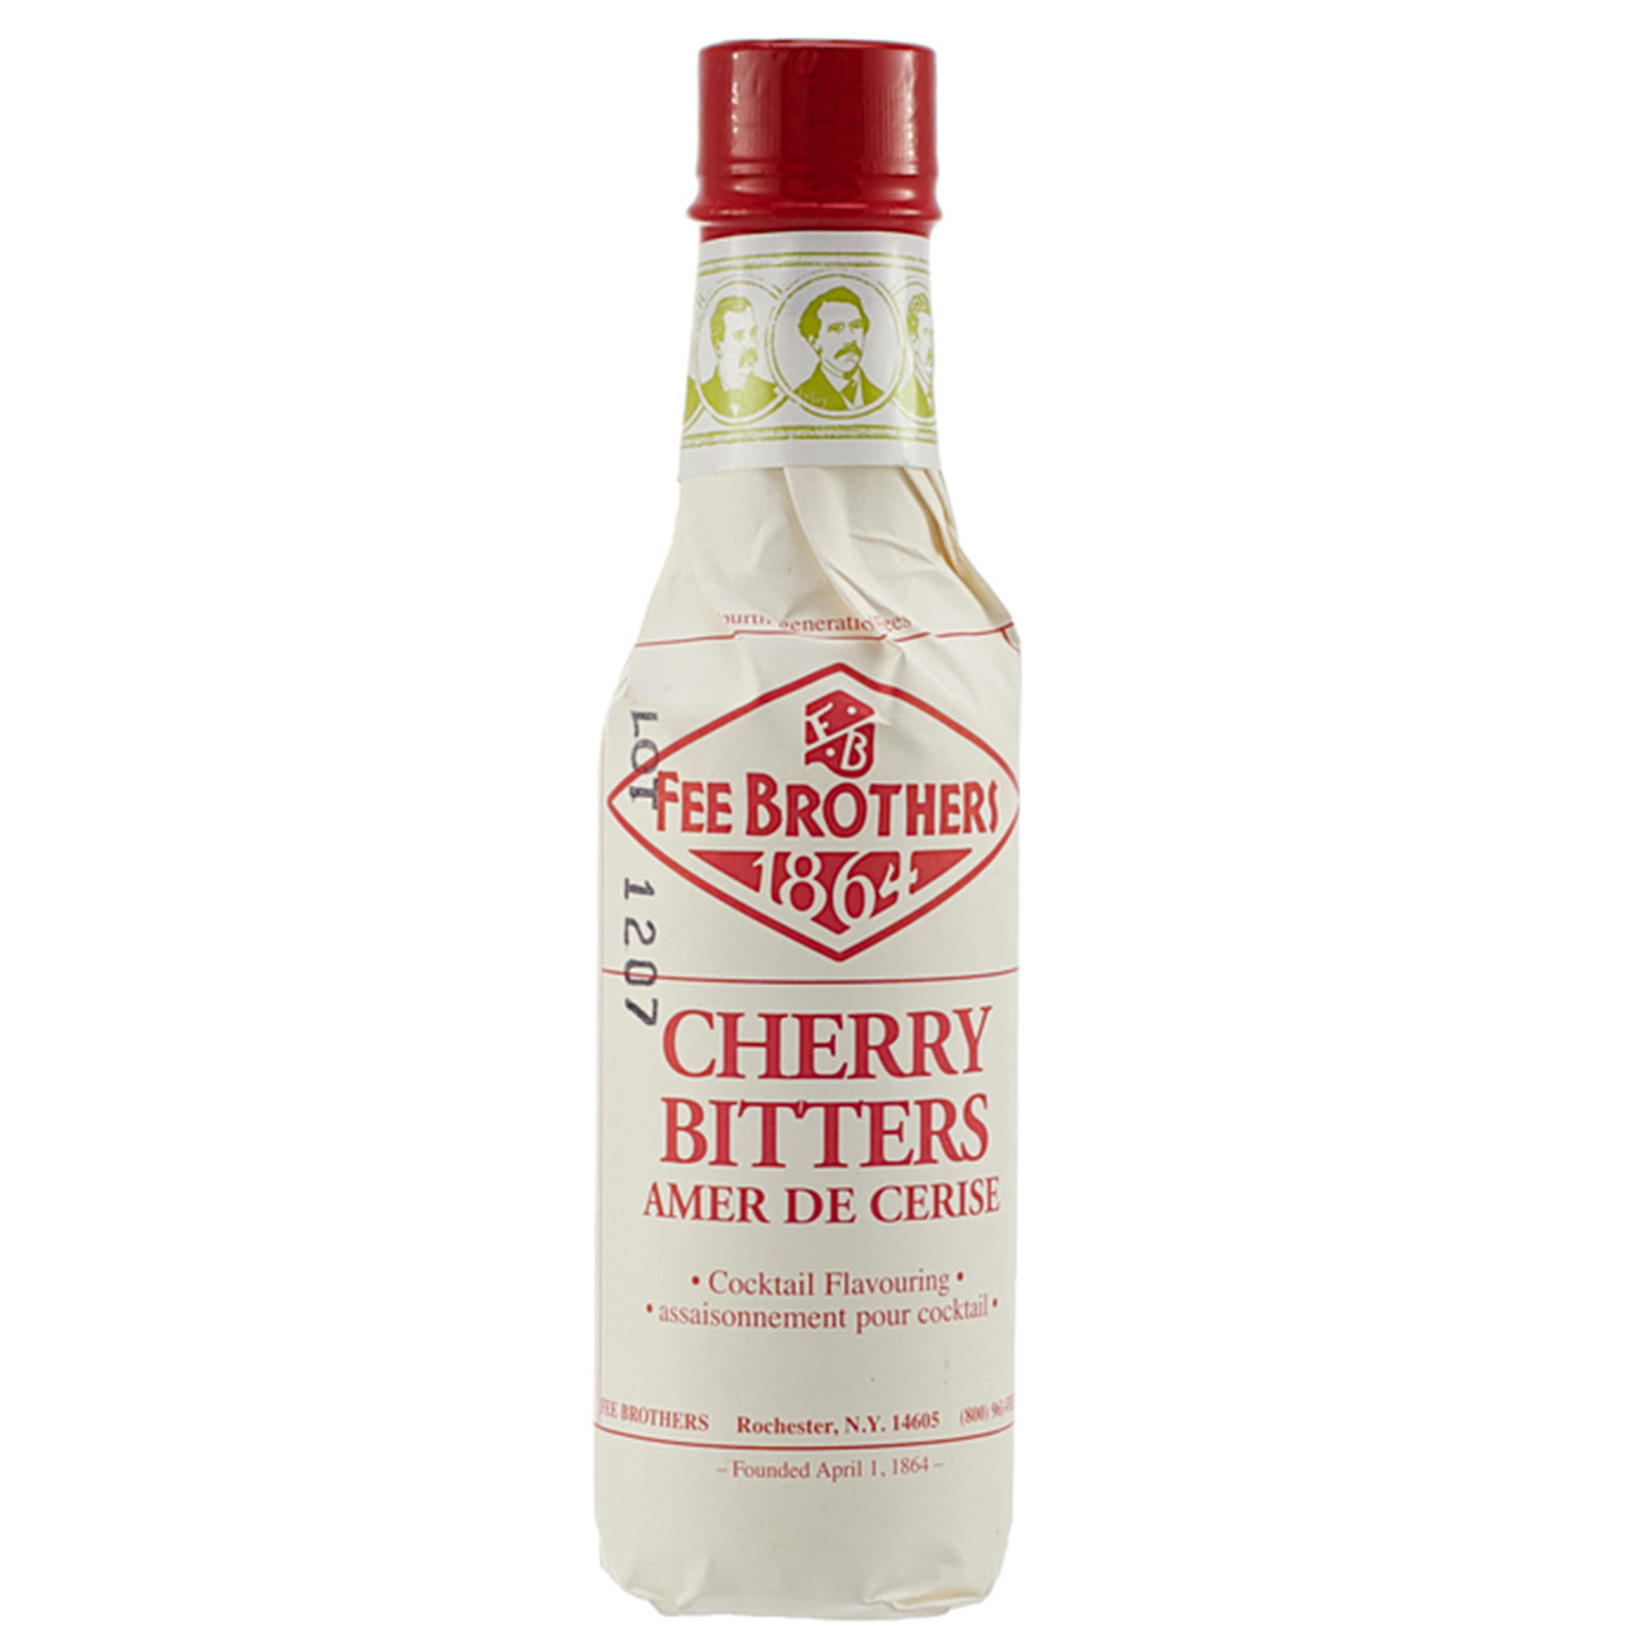 Fee Brothers Fee Brothers Bitters Cherry